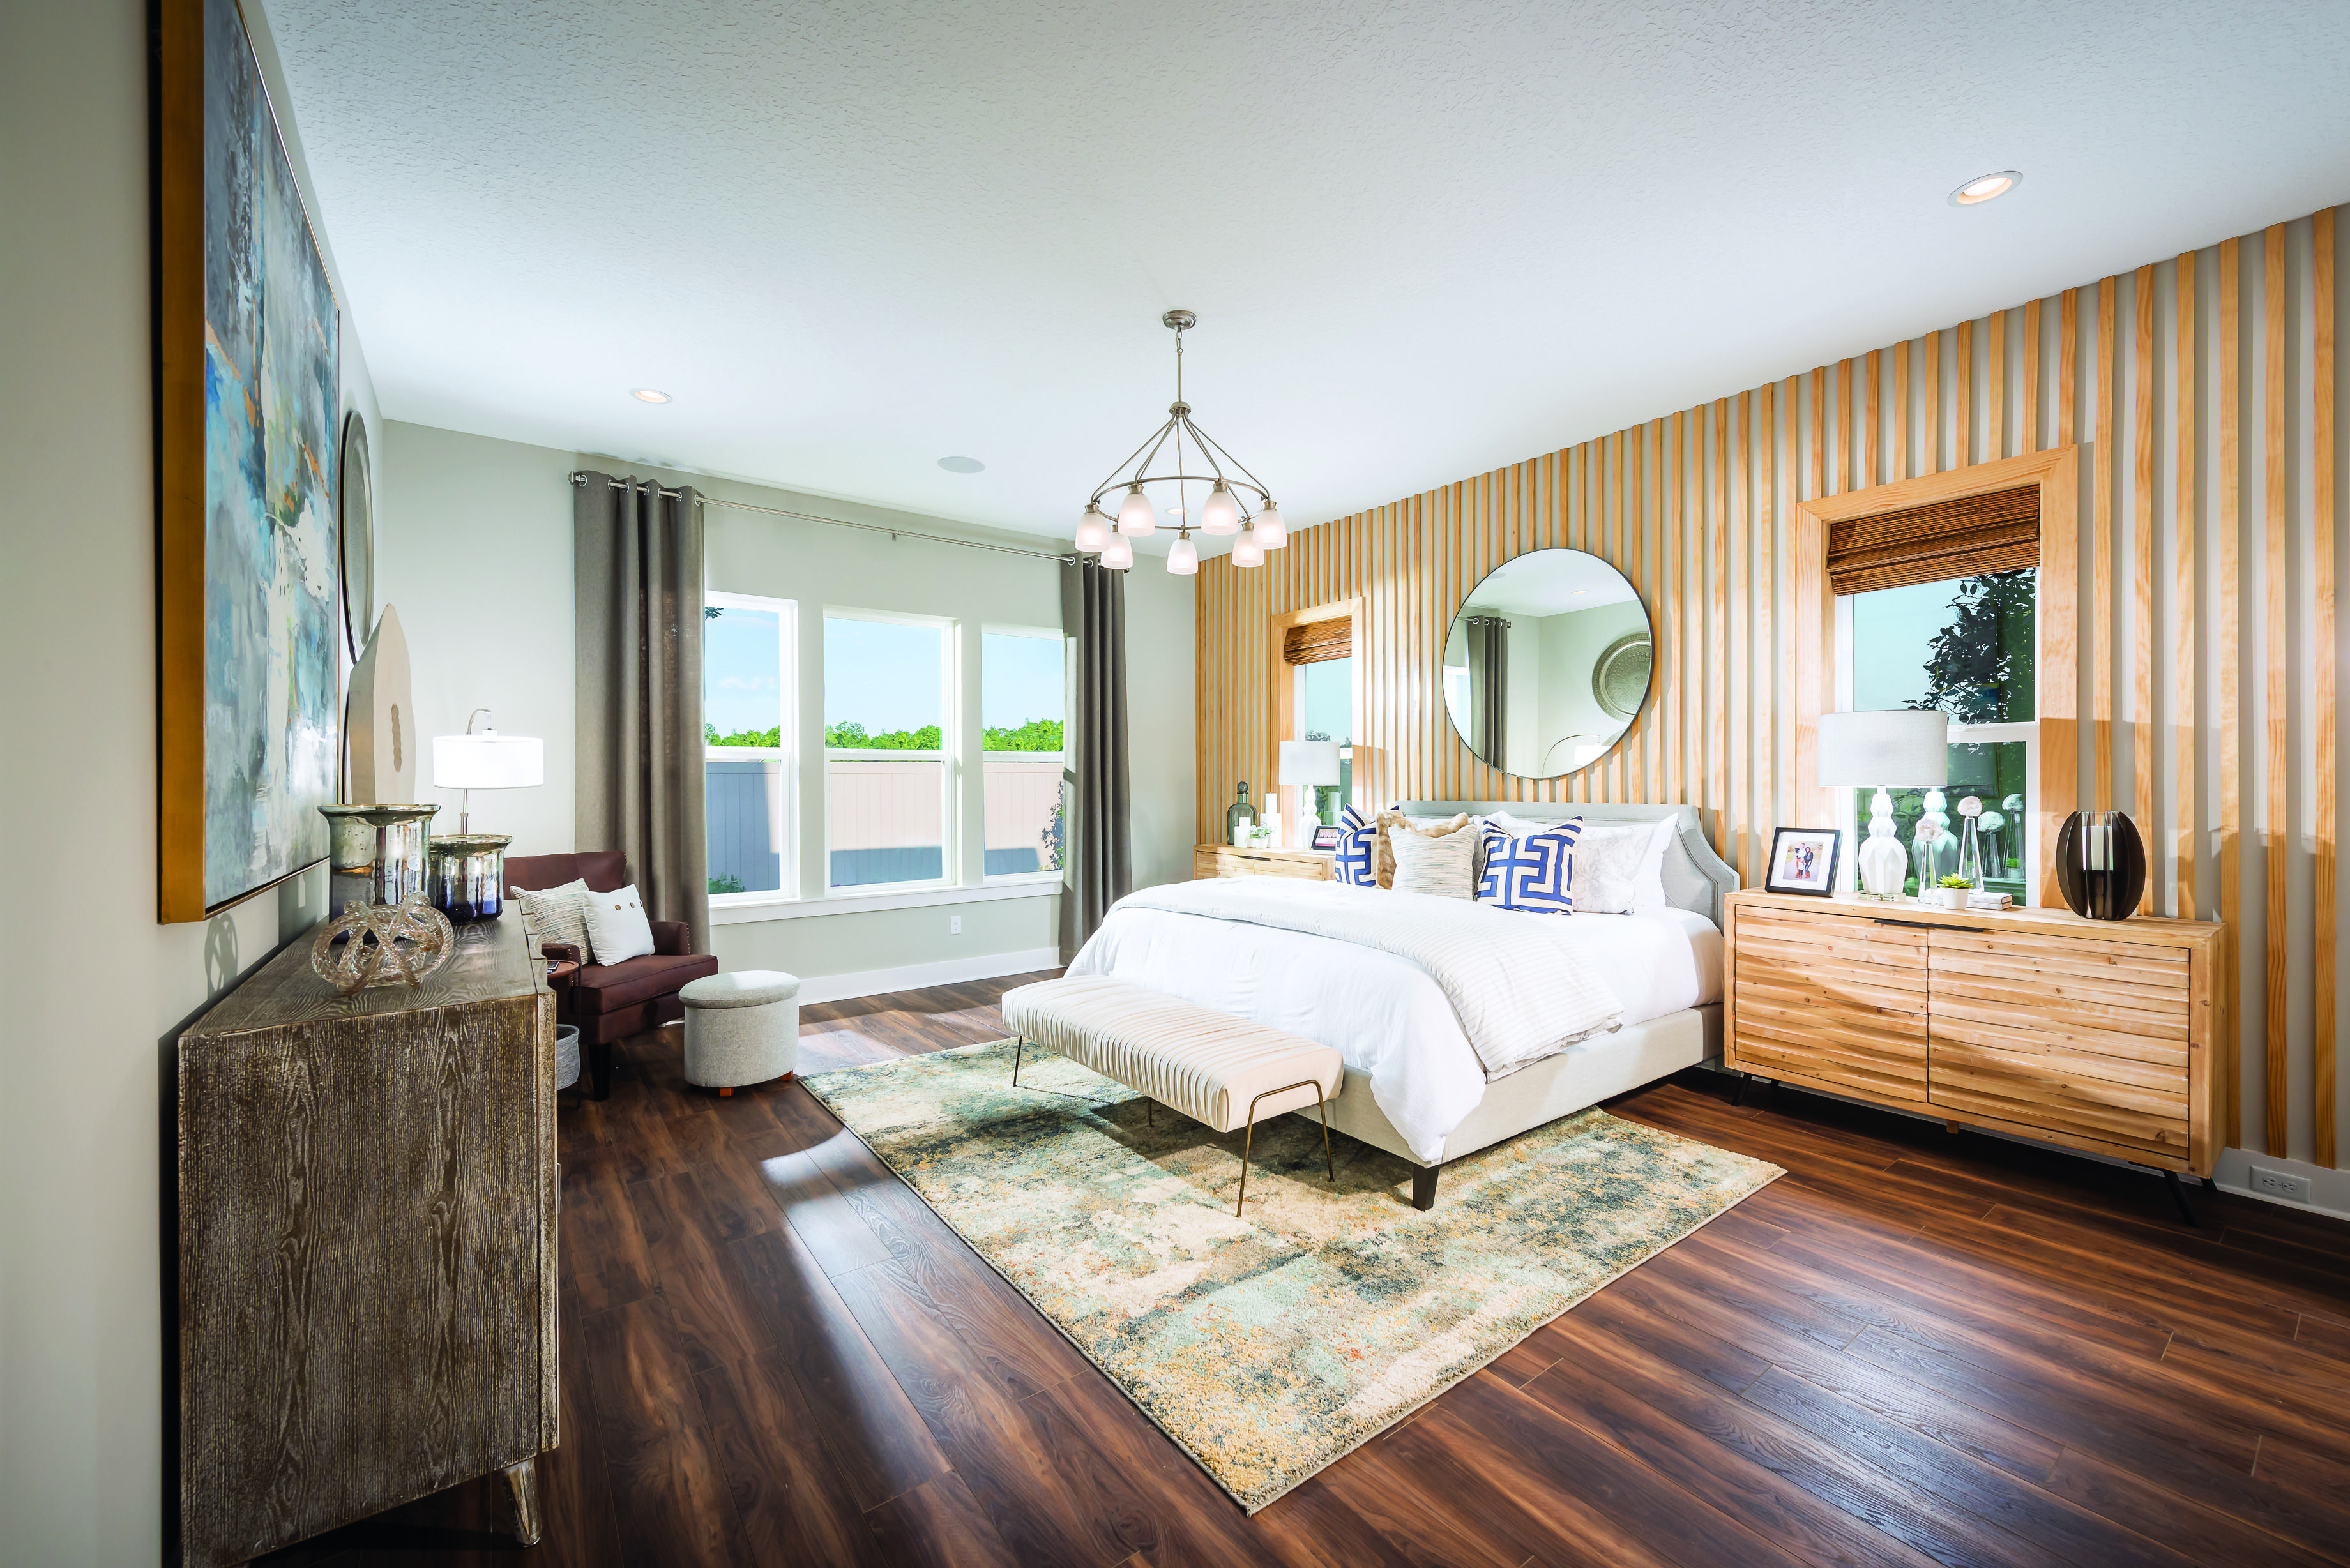 Intricate Wood Wall Accents Steal The Show In This Luxurious Master Bedroom From Toll Brothers At Shearwater Am Luxury Bedroom Master Luxurious Bedrooms Home